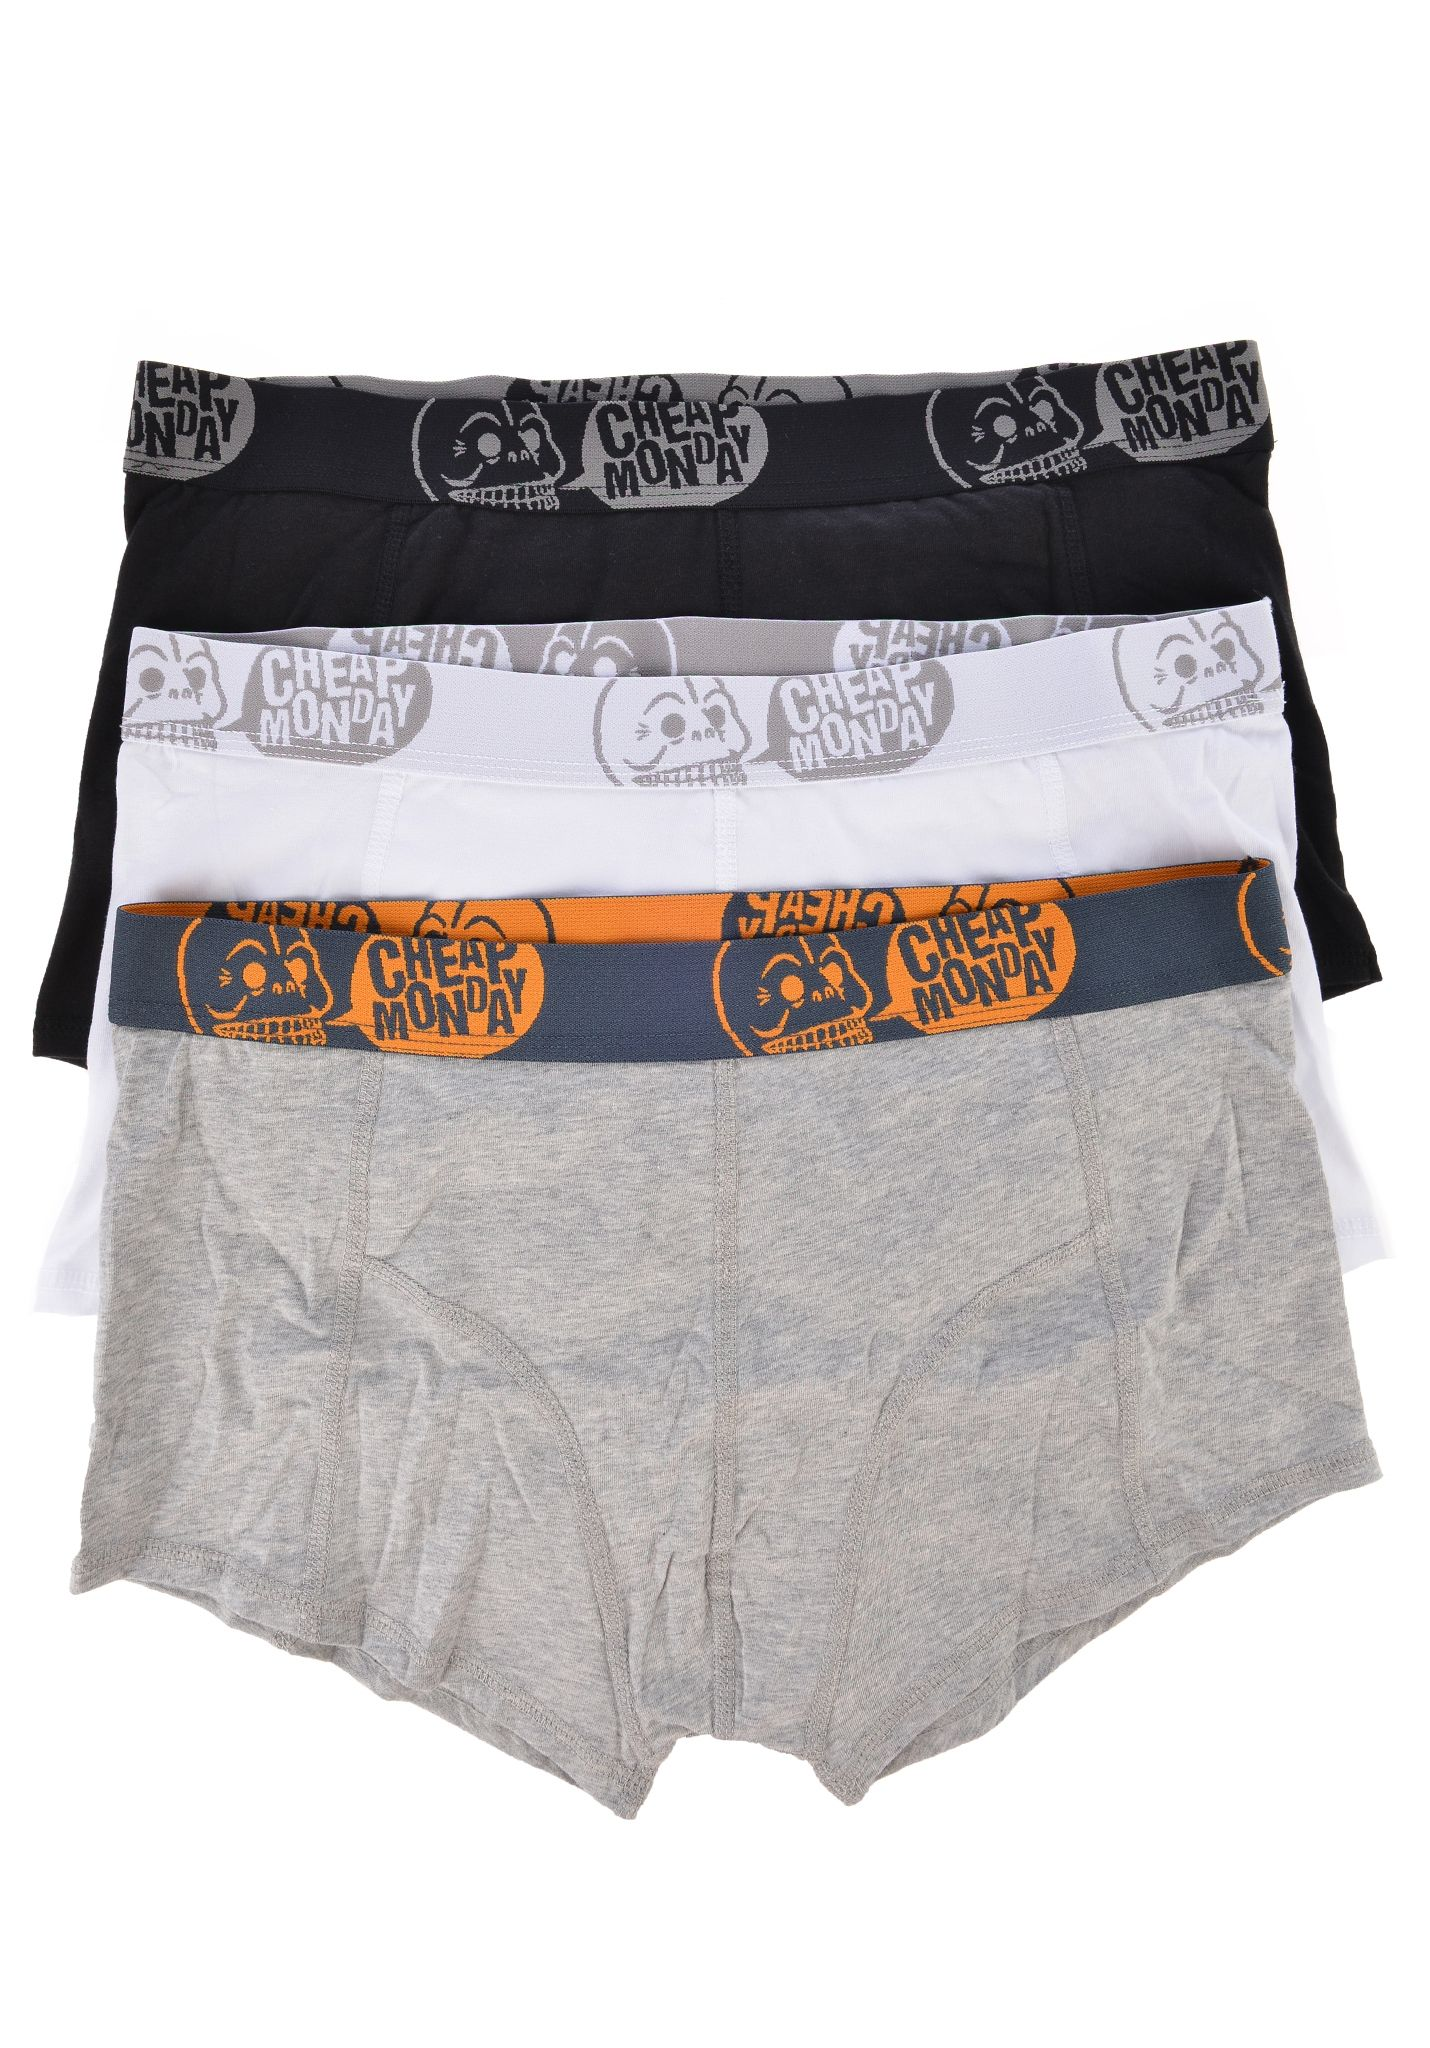 Cheap Monday 3-pack Trunk Underwear - Underwear for Men - Black ...